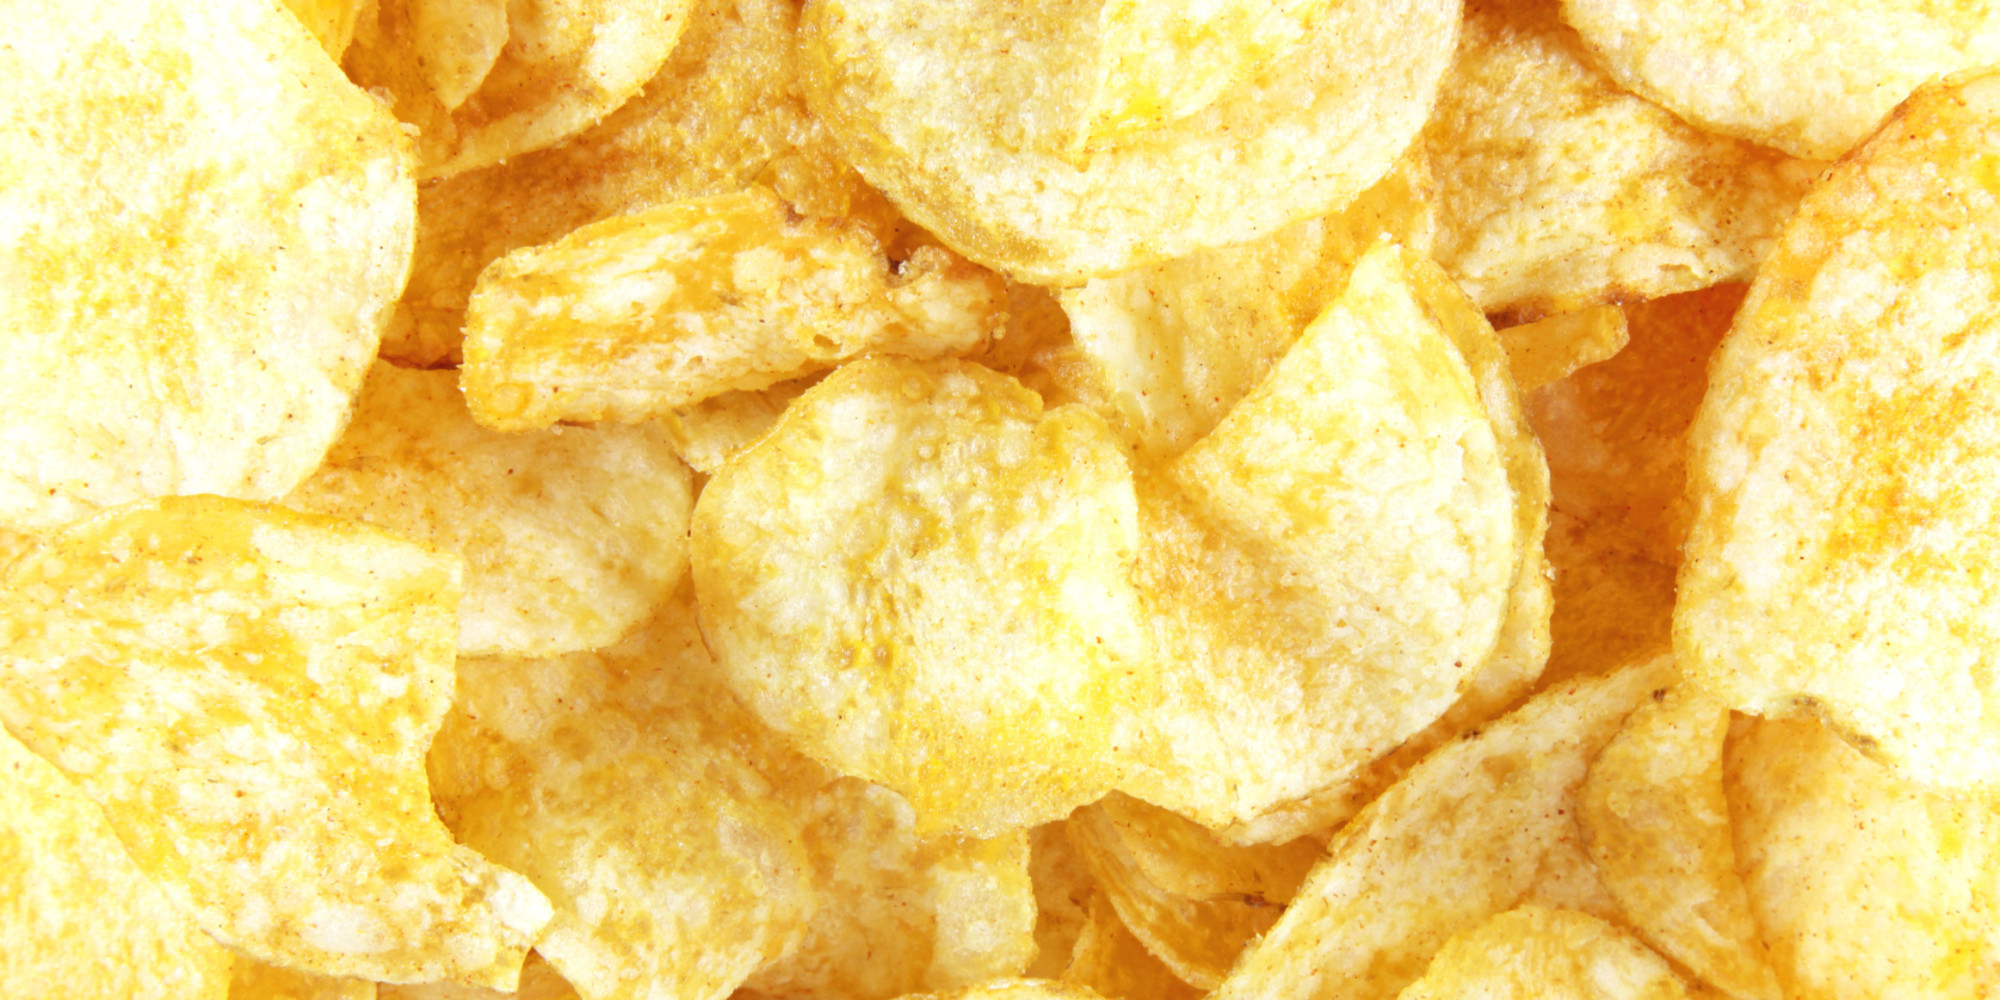 Kettle Cooked Chips ~ Ask the expert are kettle cooked potato chips healthier